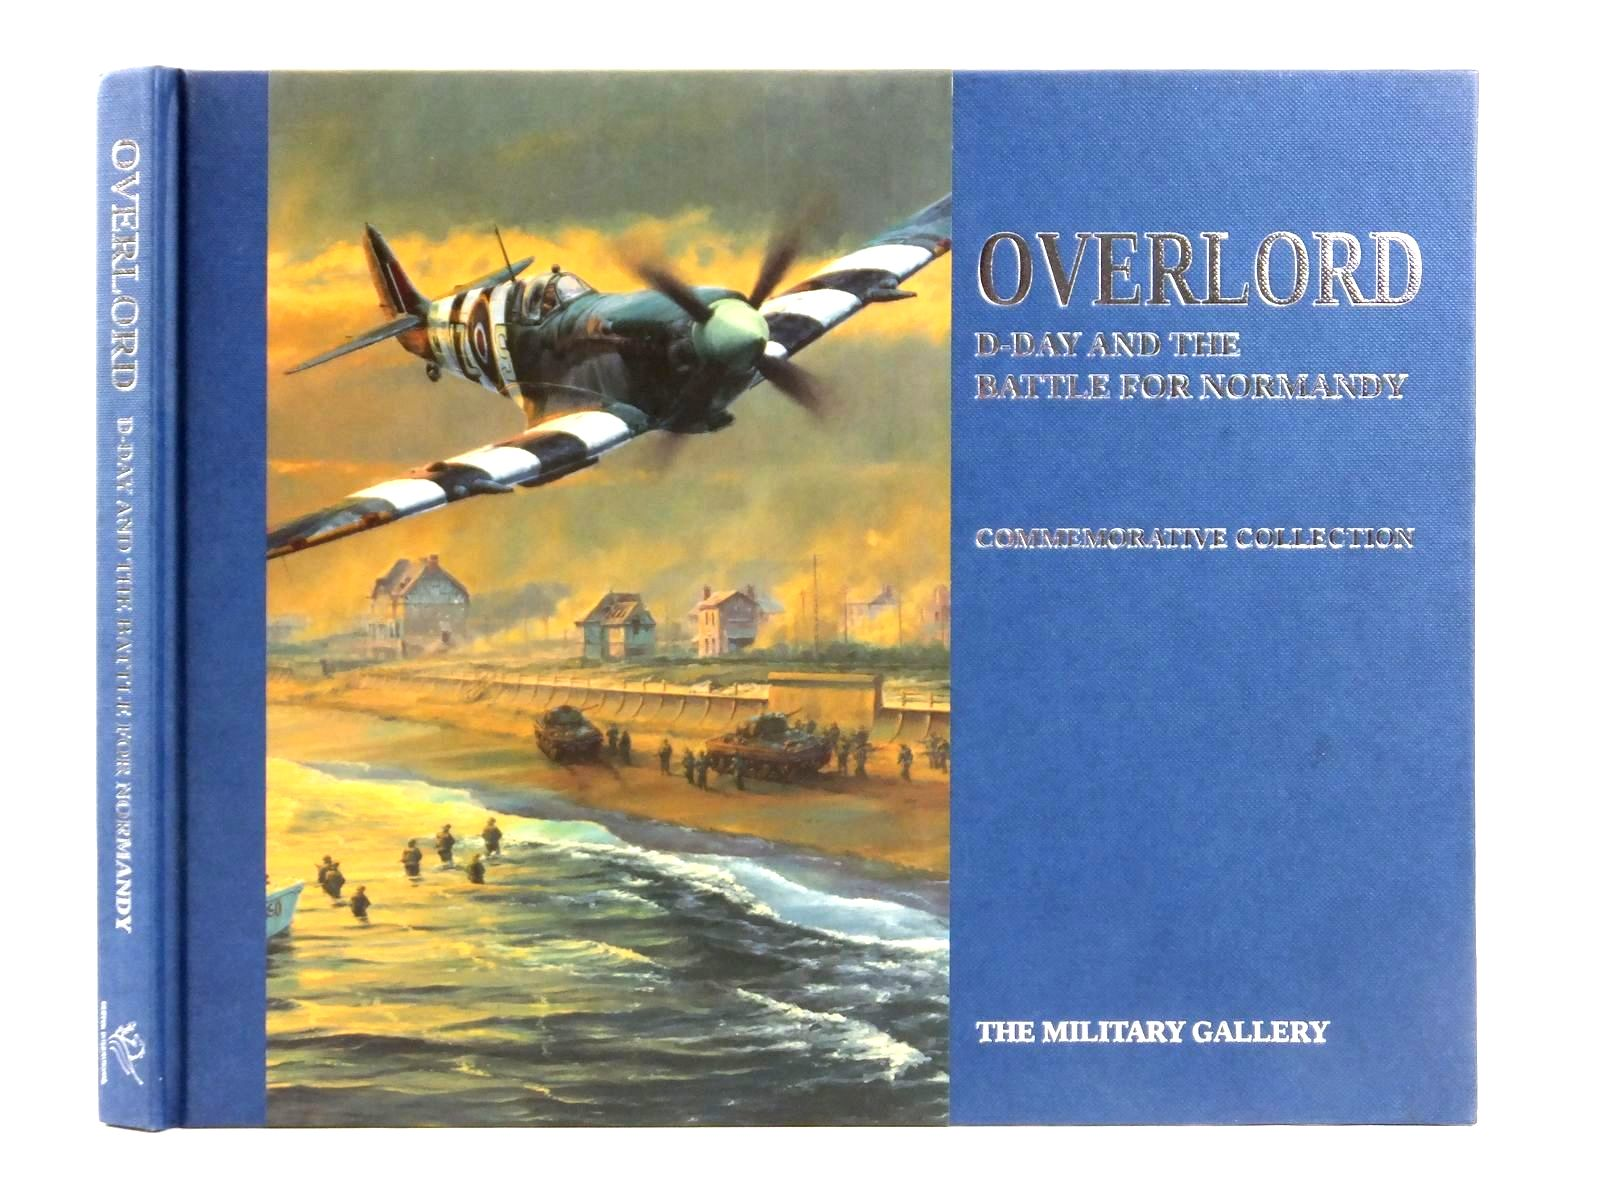 Photo of OVERLORD 6 JUNE 1944 D-DAY AND THE BATTLE FOR NORMANDY published by Griffon International (STOCK CODE: 1608551)  for sale by Stella & Rose's Books